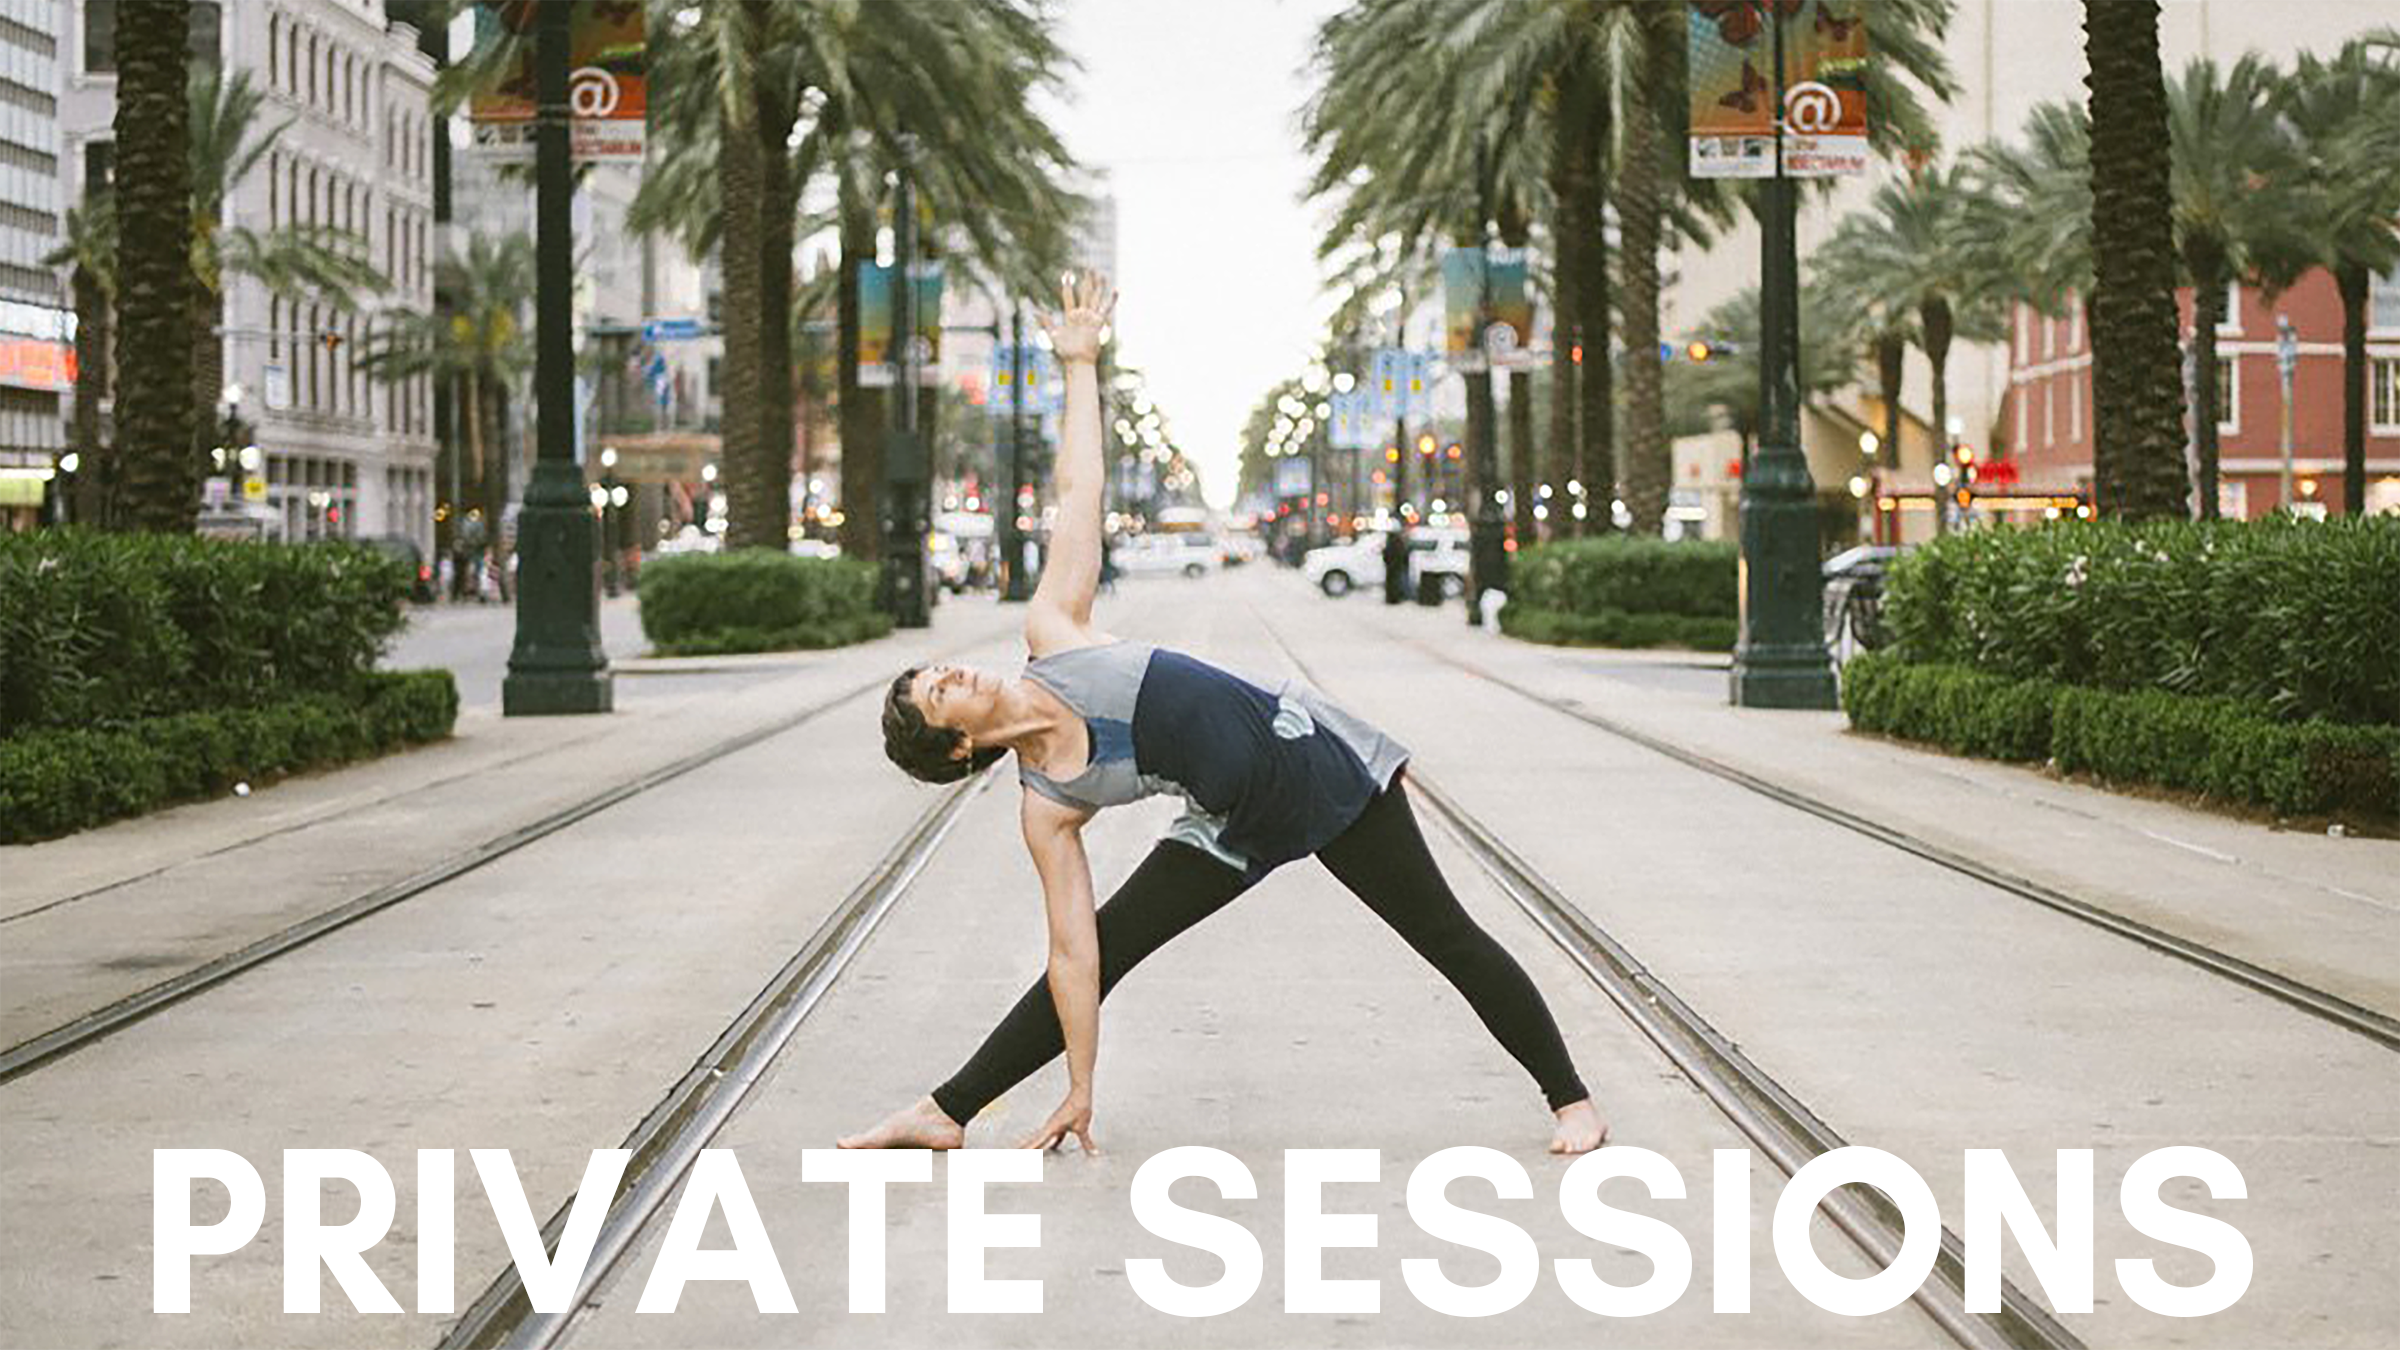 Busy schedule? Injured? Specific goals? Want personal instruction on form? A private session is just what you need! We provide yoga and/or TRX workouts (strength and resistance training) designed to fit your temperament, your body and your needs.  Please click here to schedule a FREE 30-minute consultation to discuss your personal fitness goals.